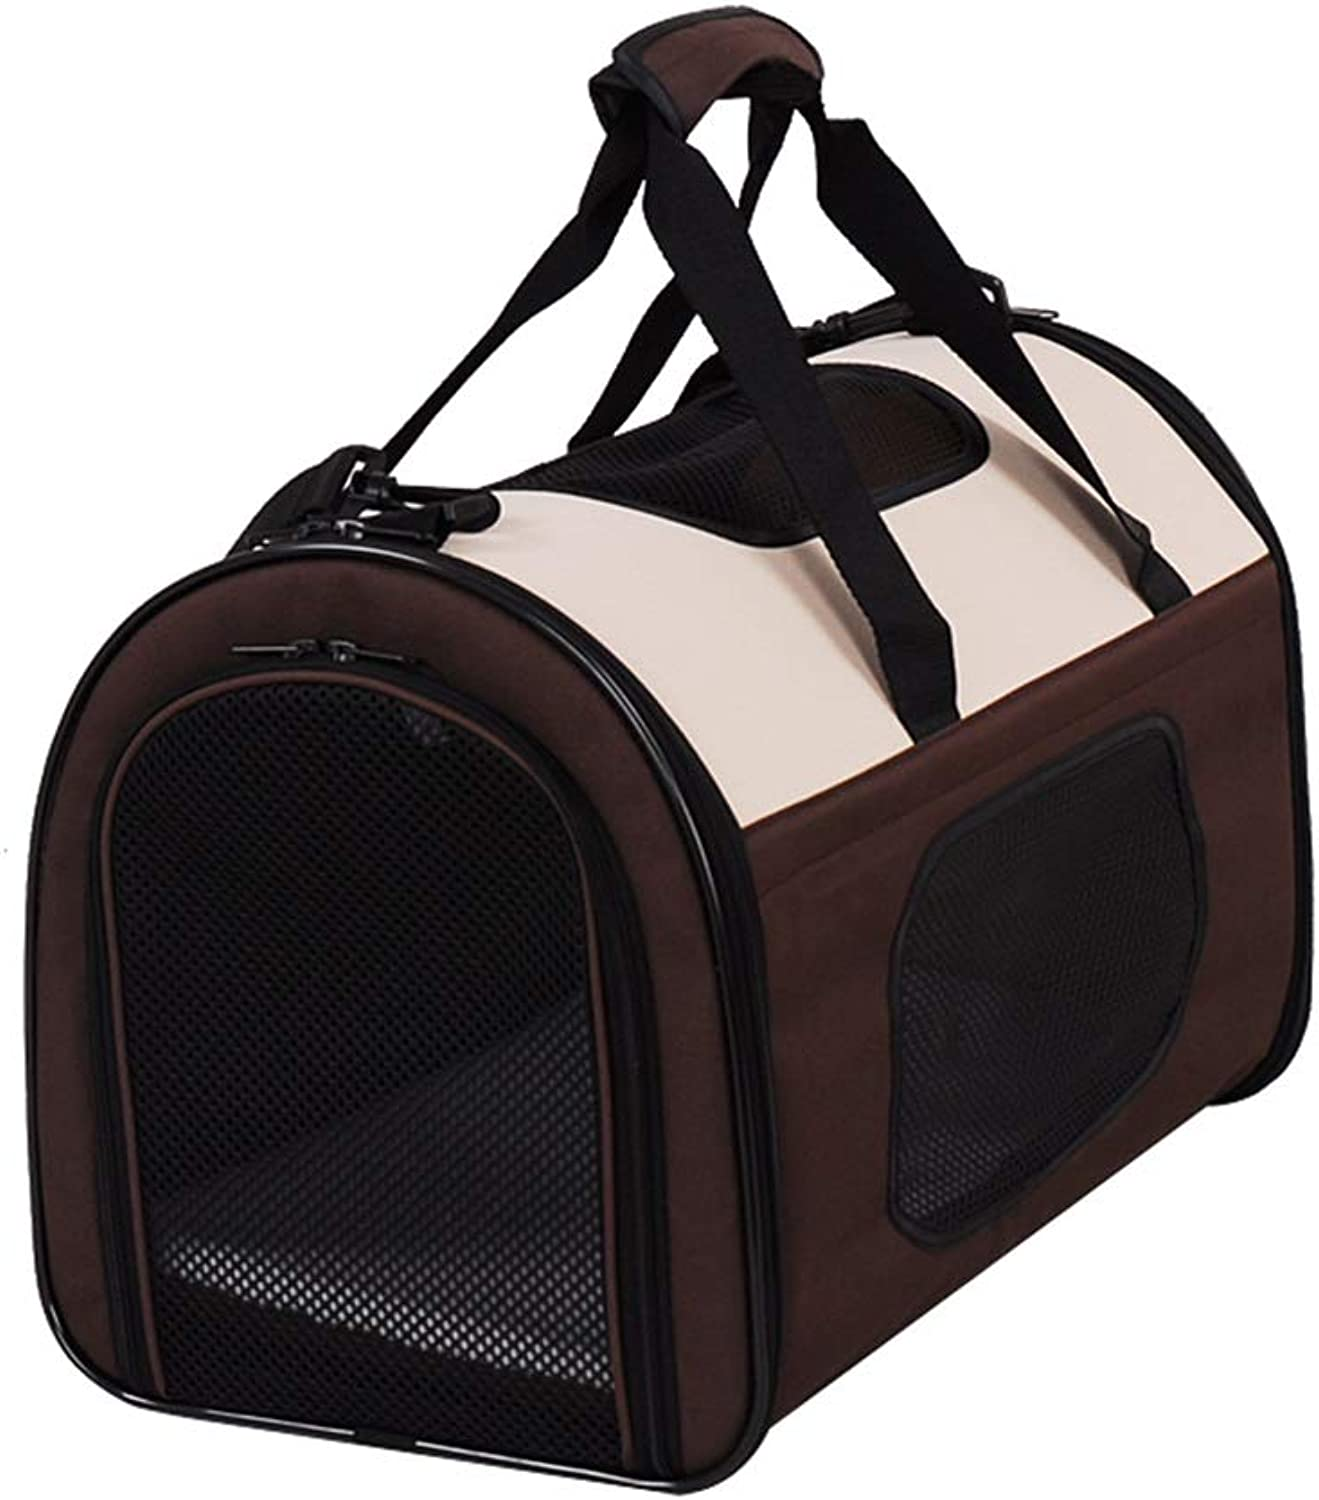 Pet Carrier for Small Dogs, Cats, Puppy, Airline Approved Portable Carrier Bag for Airline, Train, Travel Friendly (50×30×33cm)